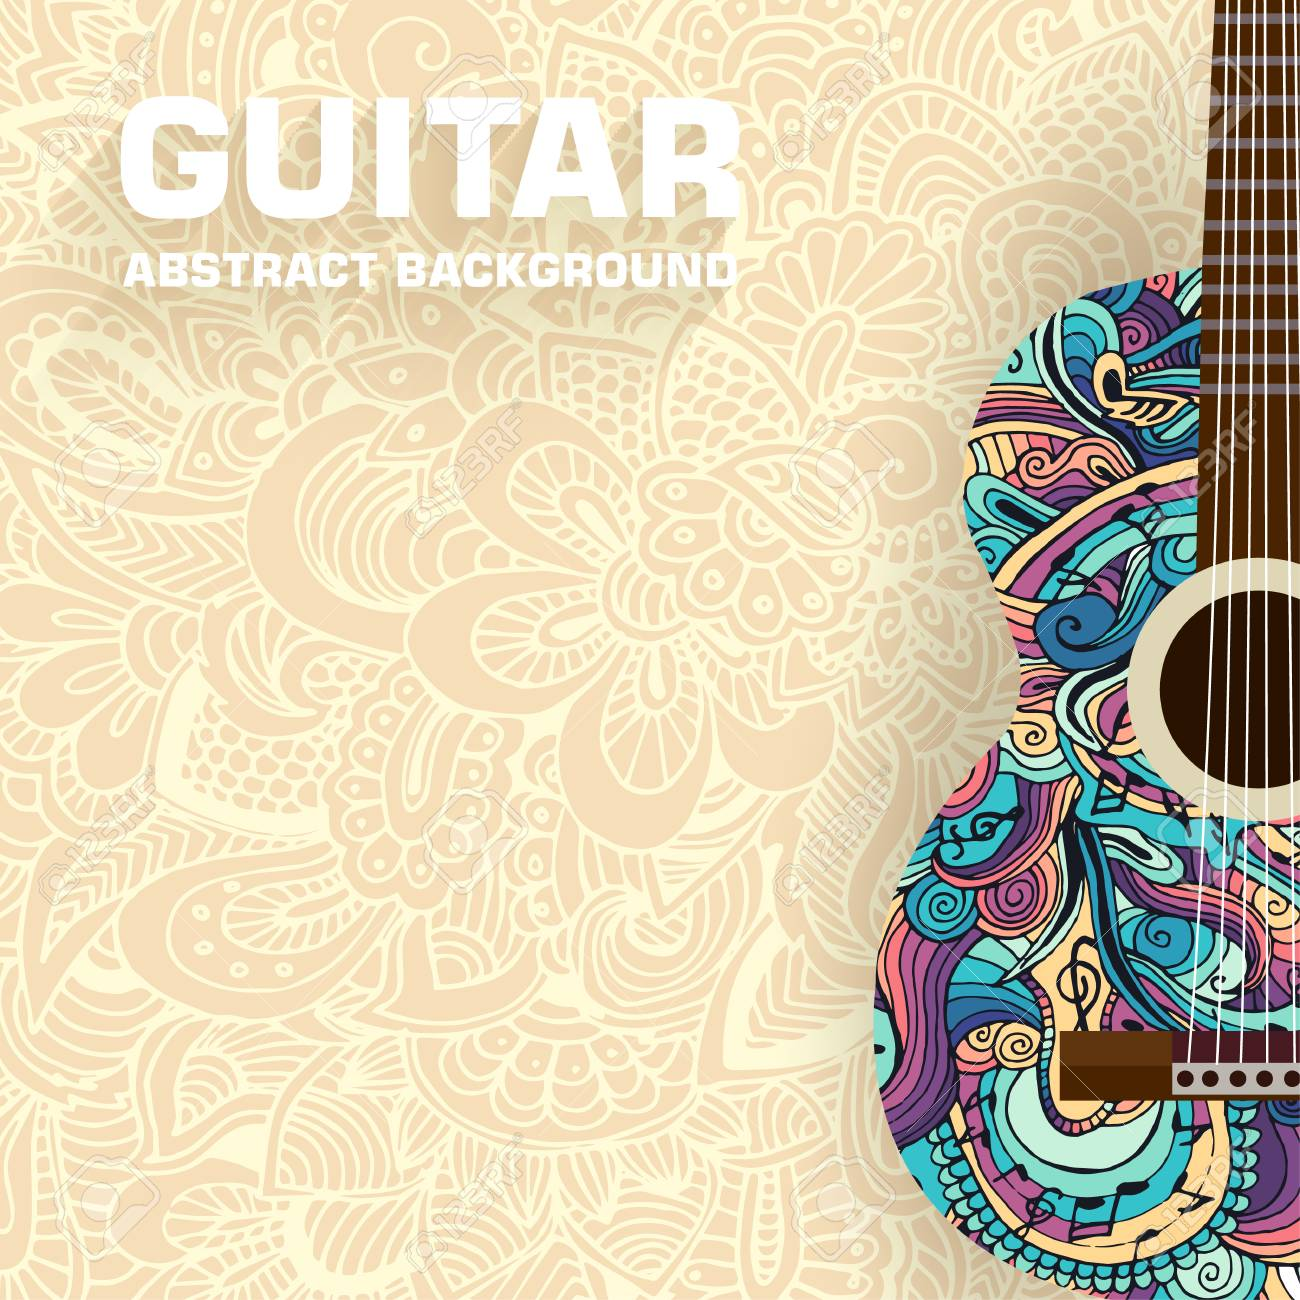 Abstract musical notes on a background. Vector illustration concept design - 34278837